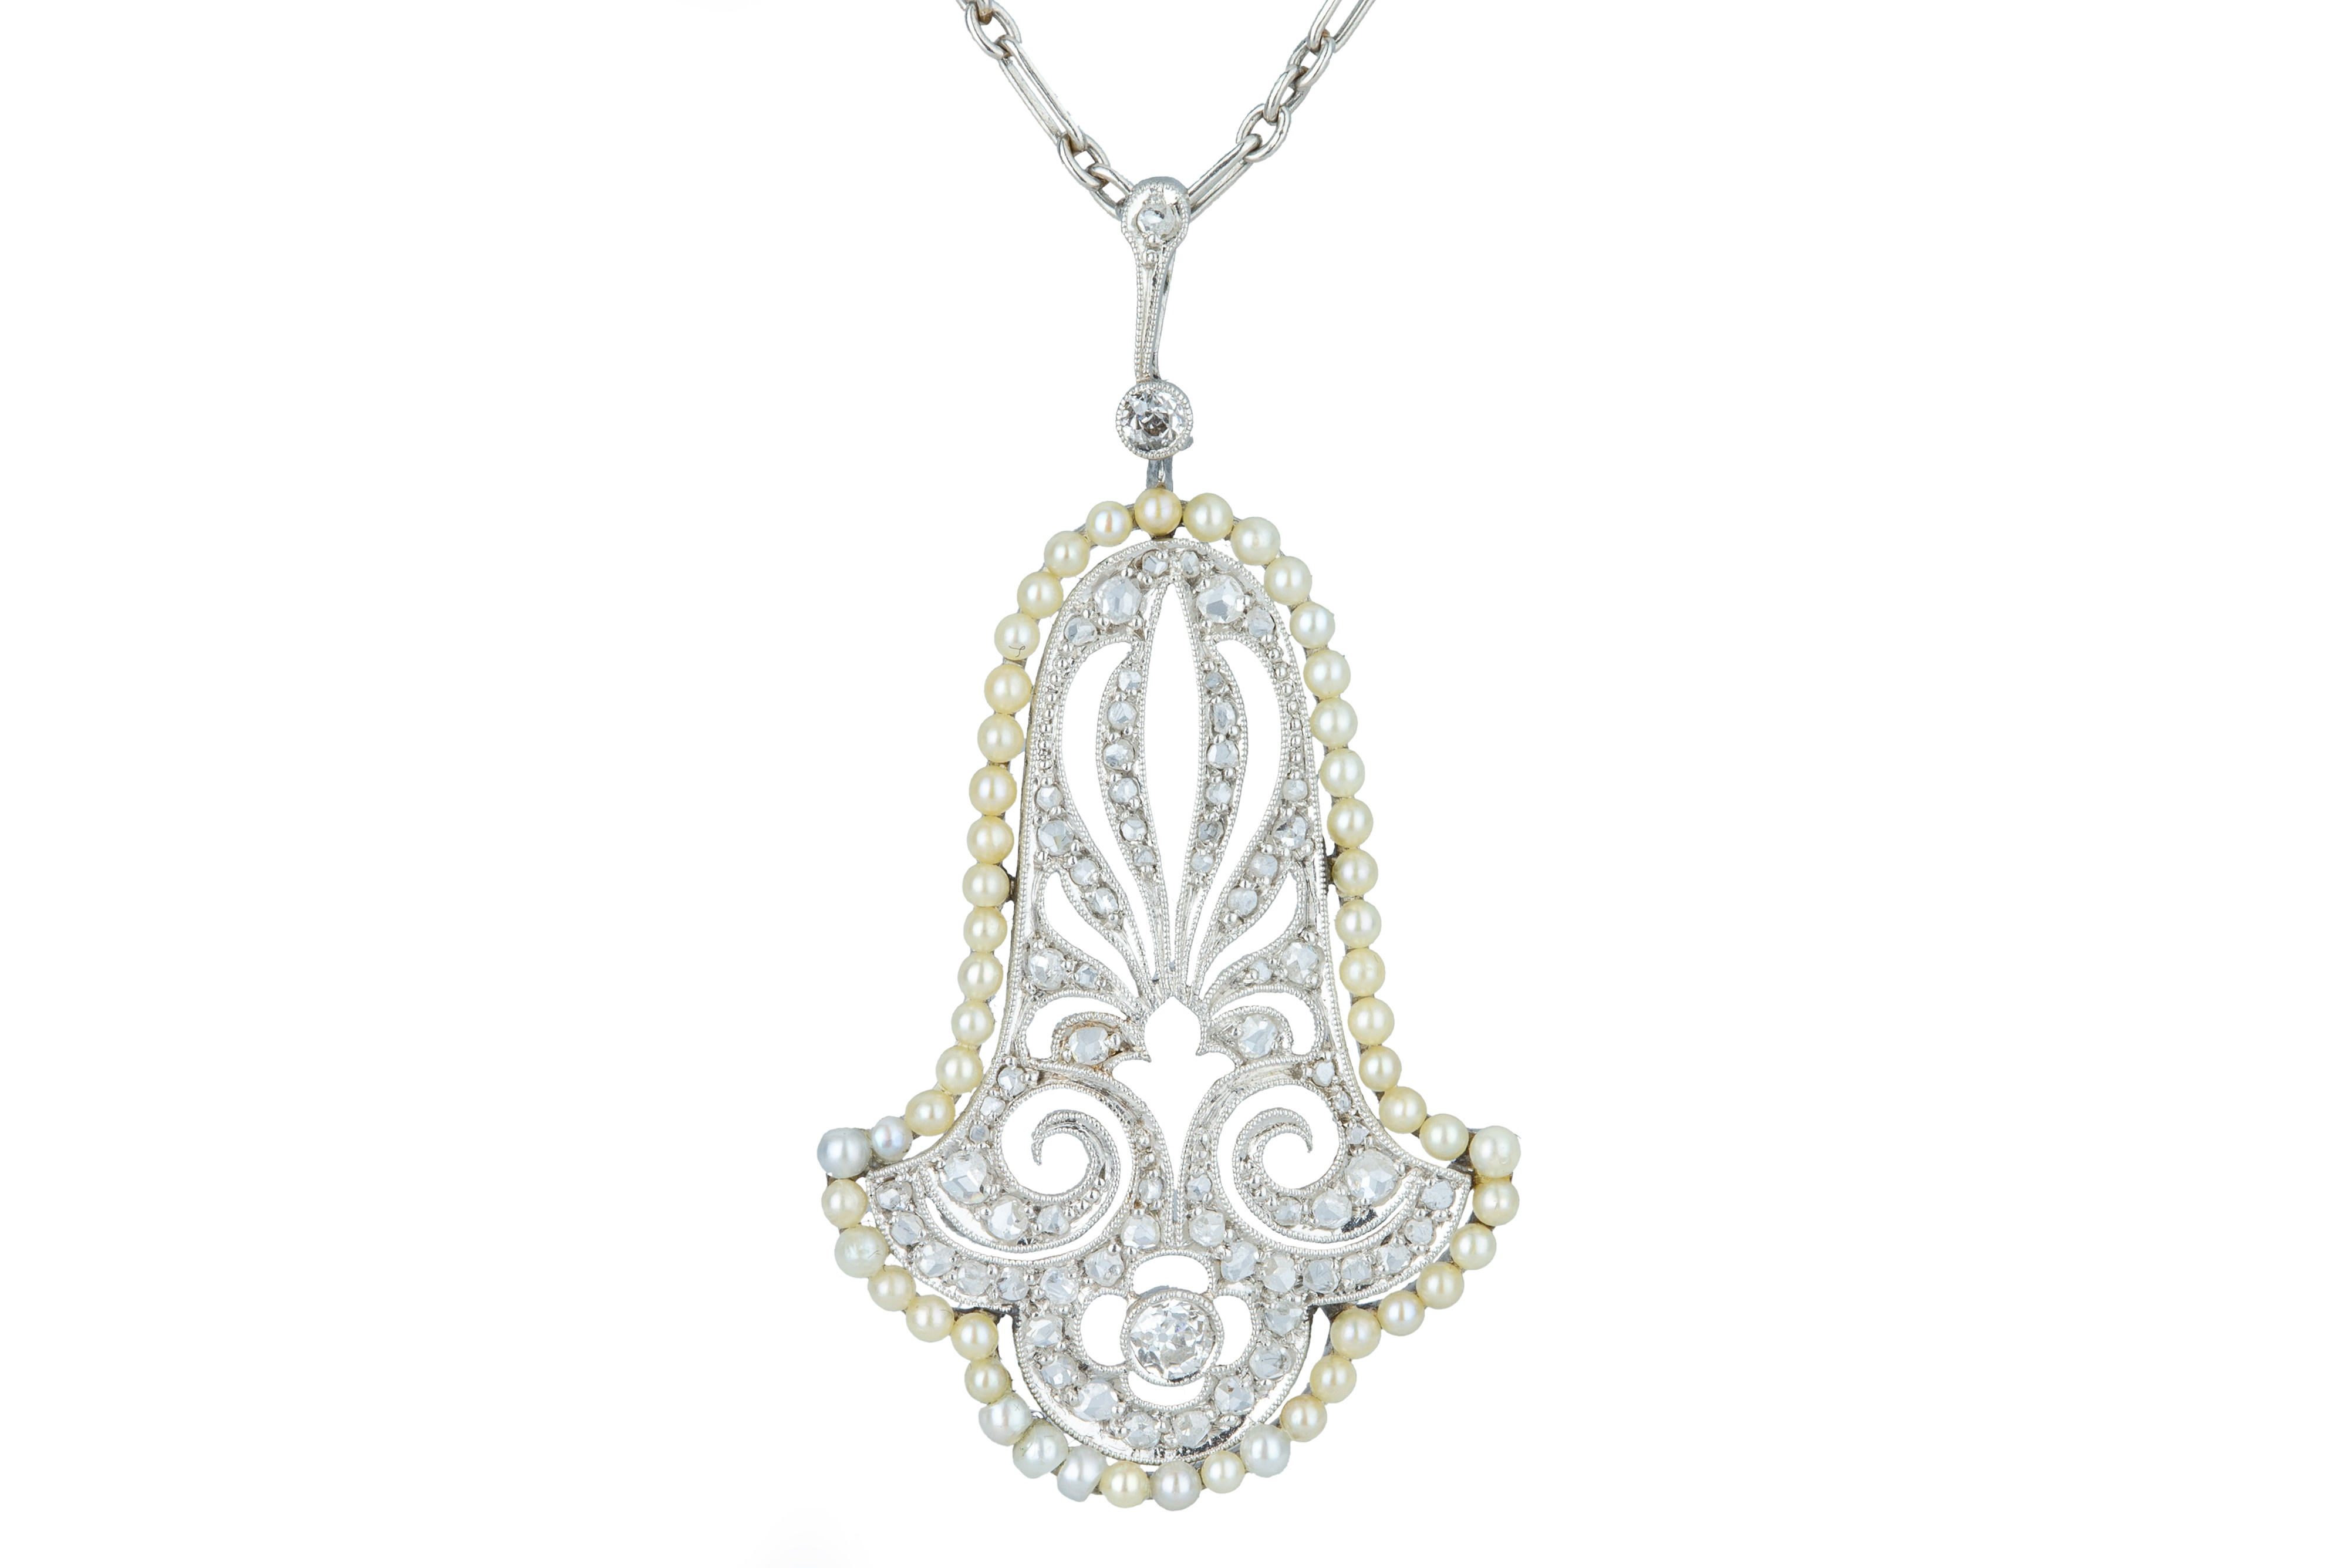 A delicate Art Deco diamond and seed pearl pendant.